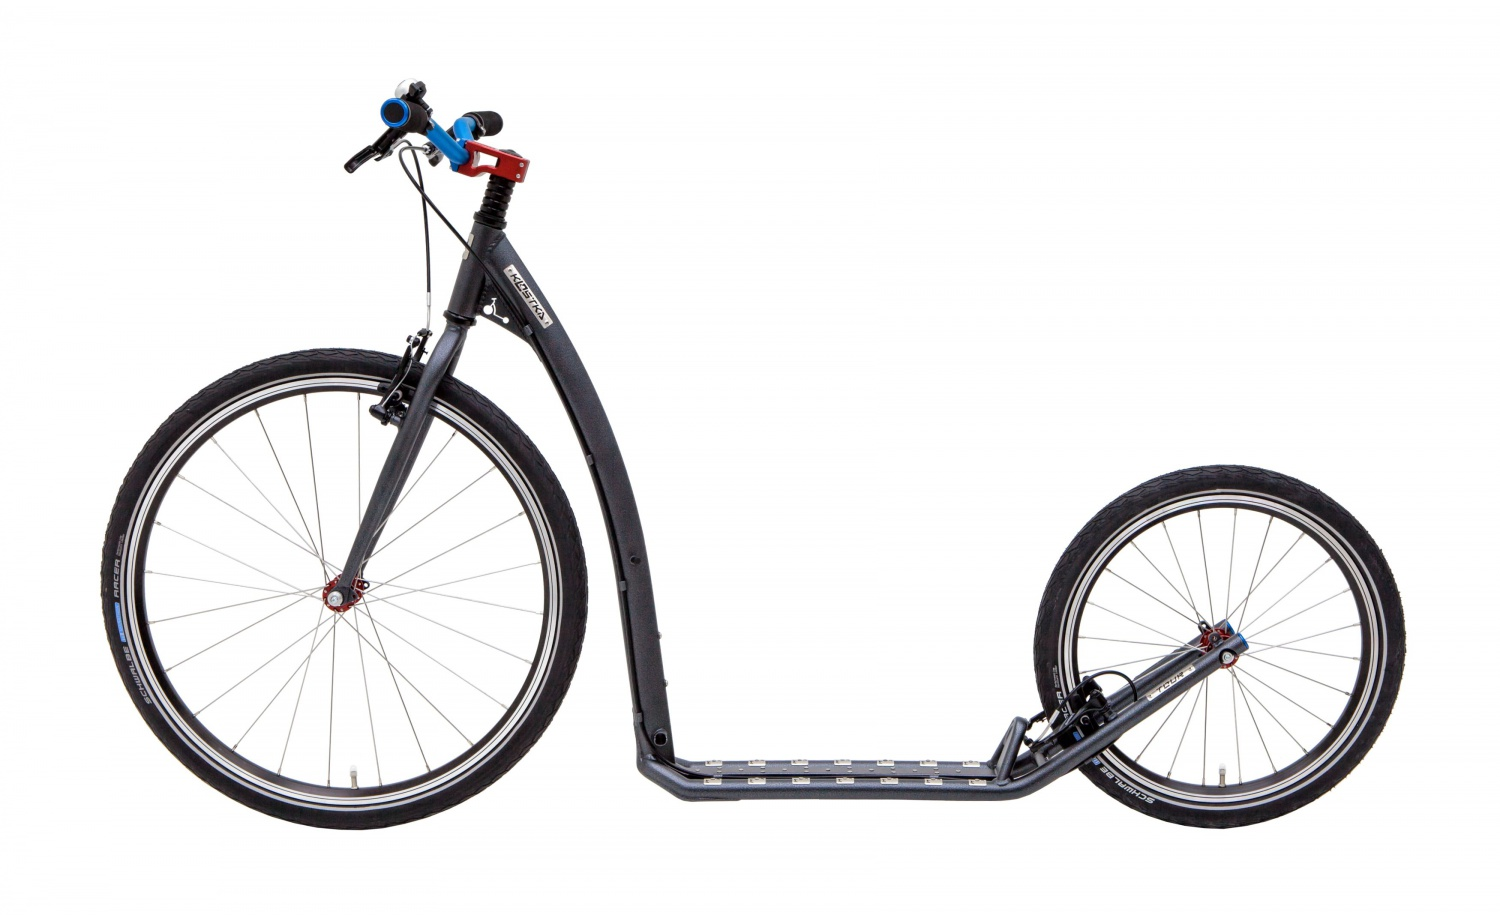 Footbike KOSTKA TOUR MAX (G5) - Limited COLOR Edition